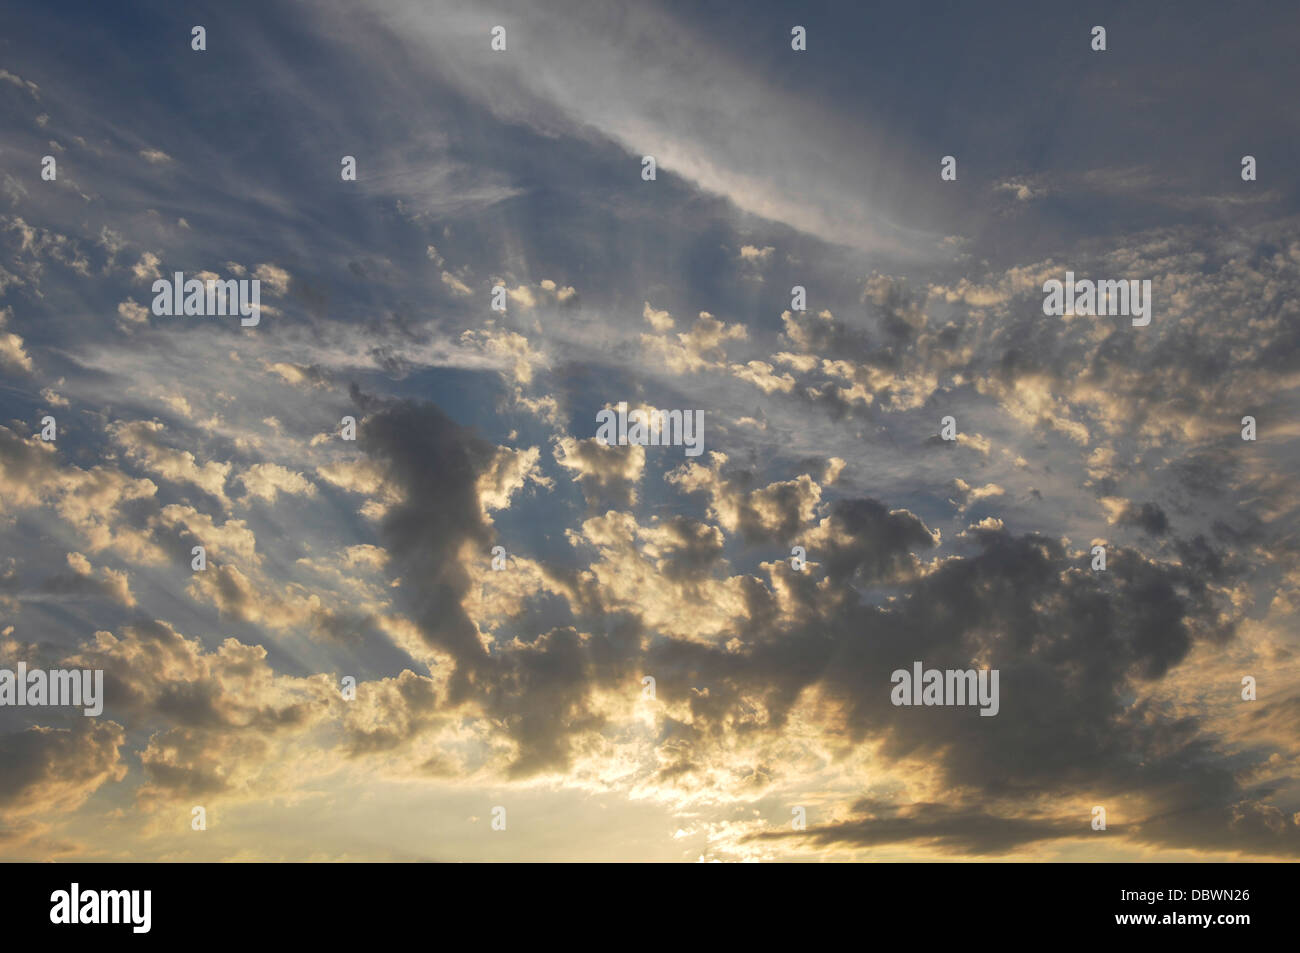 dramatic skyscape - Stock Image